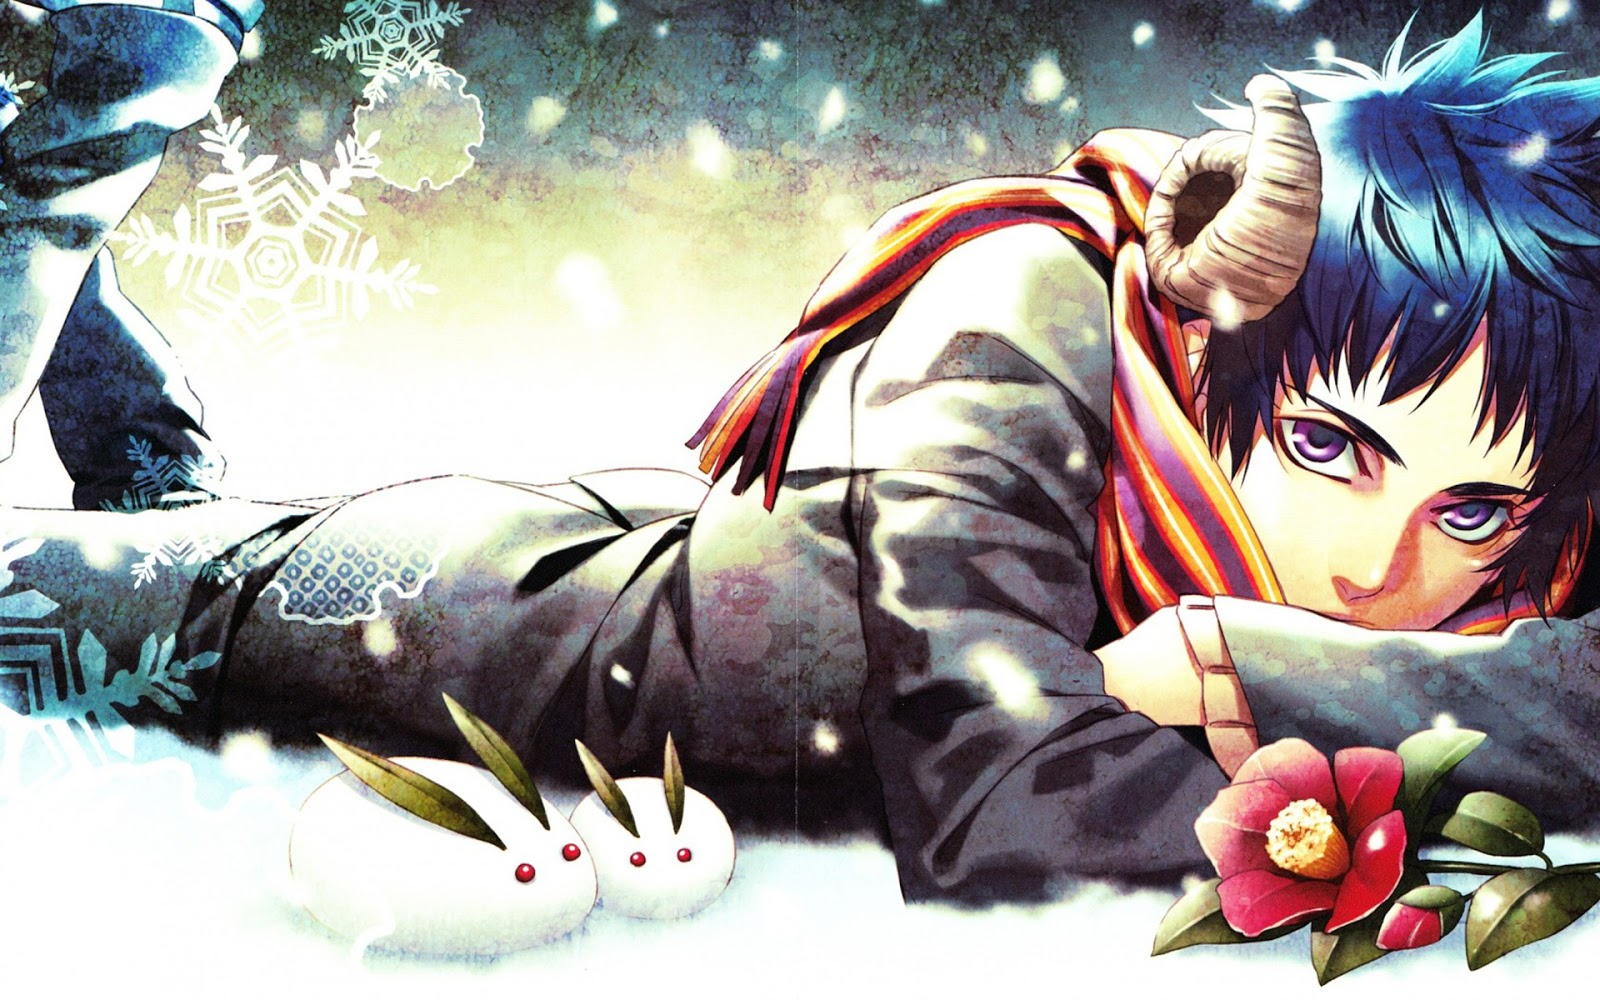 Male Guy Horn Snowflakes Snow scarf Anime HD Wallpaper Backgrounds 1600x1000